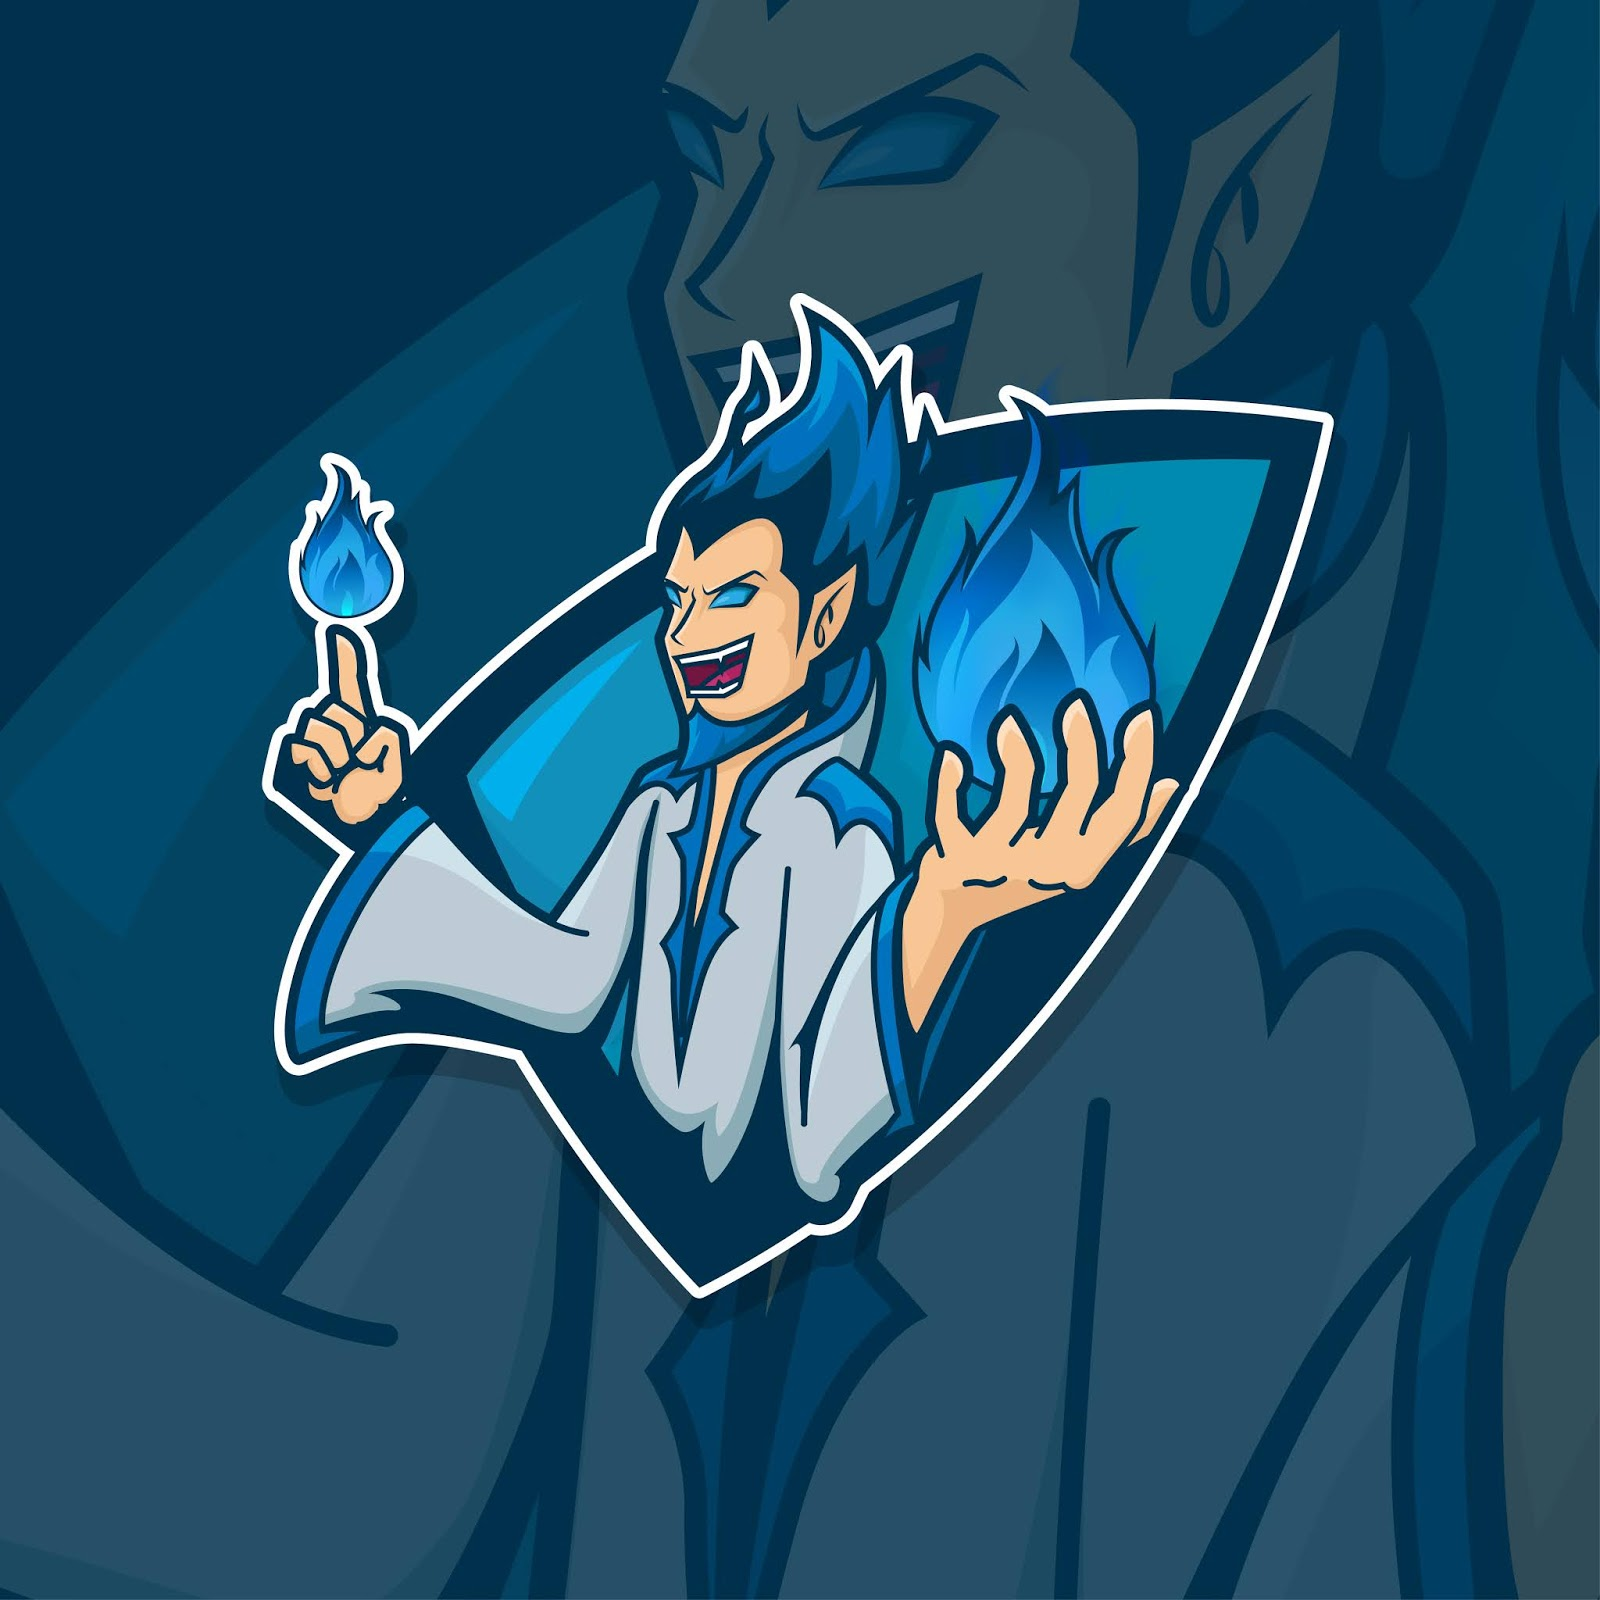 Esport Gamer Logo Wizard Free Download Vector CDR, AI, EPS and PNG Formats